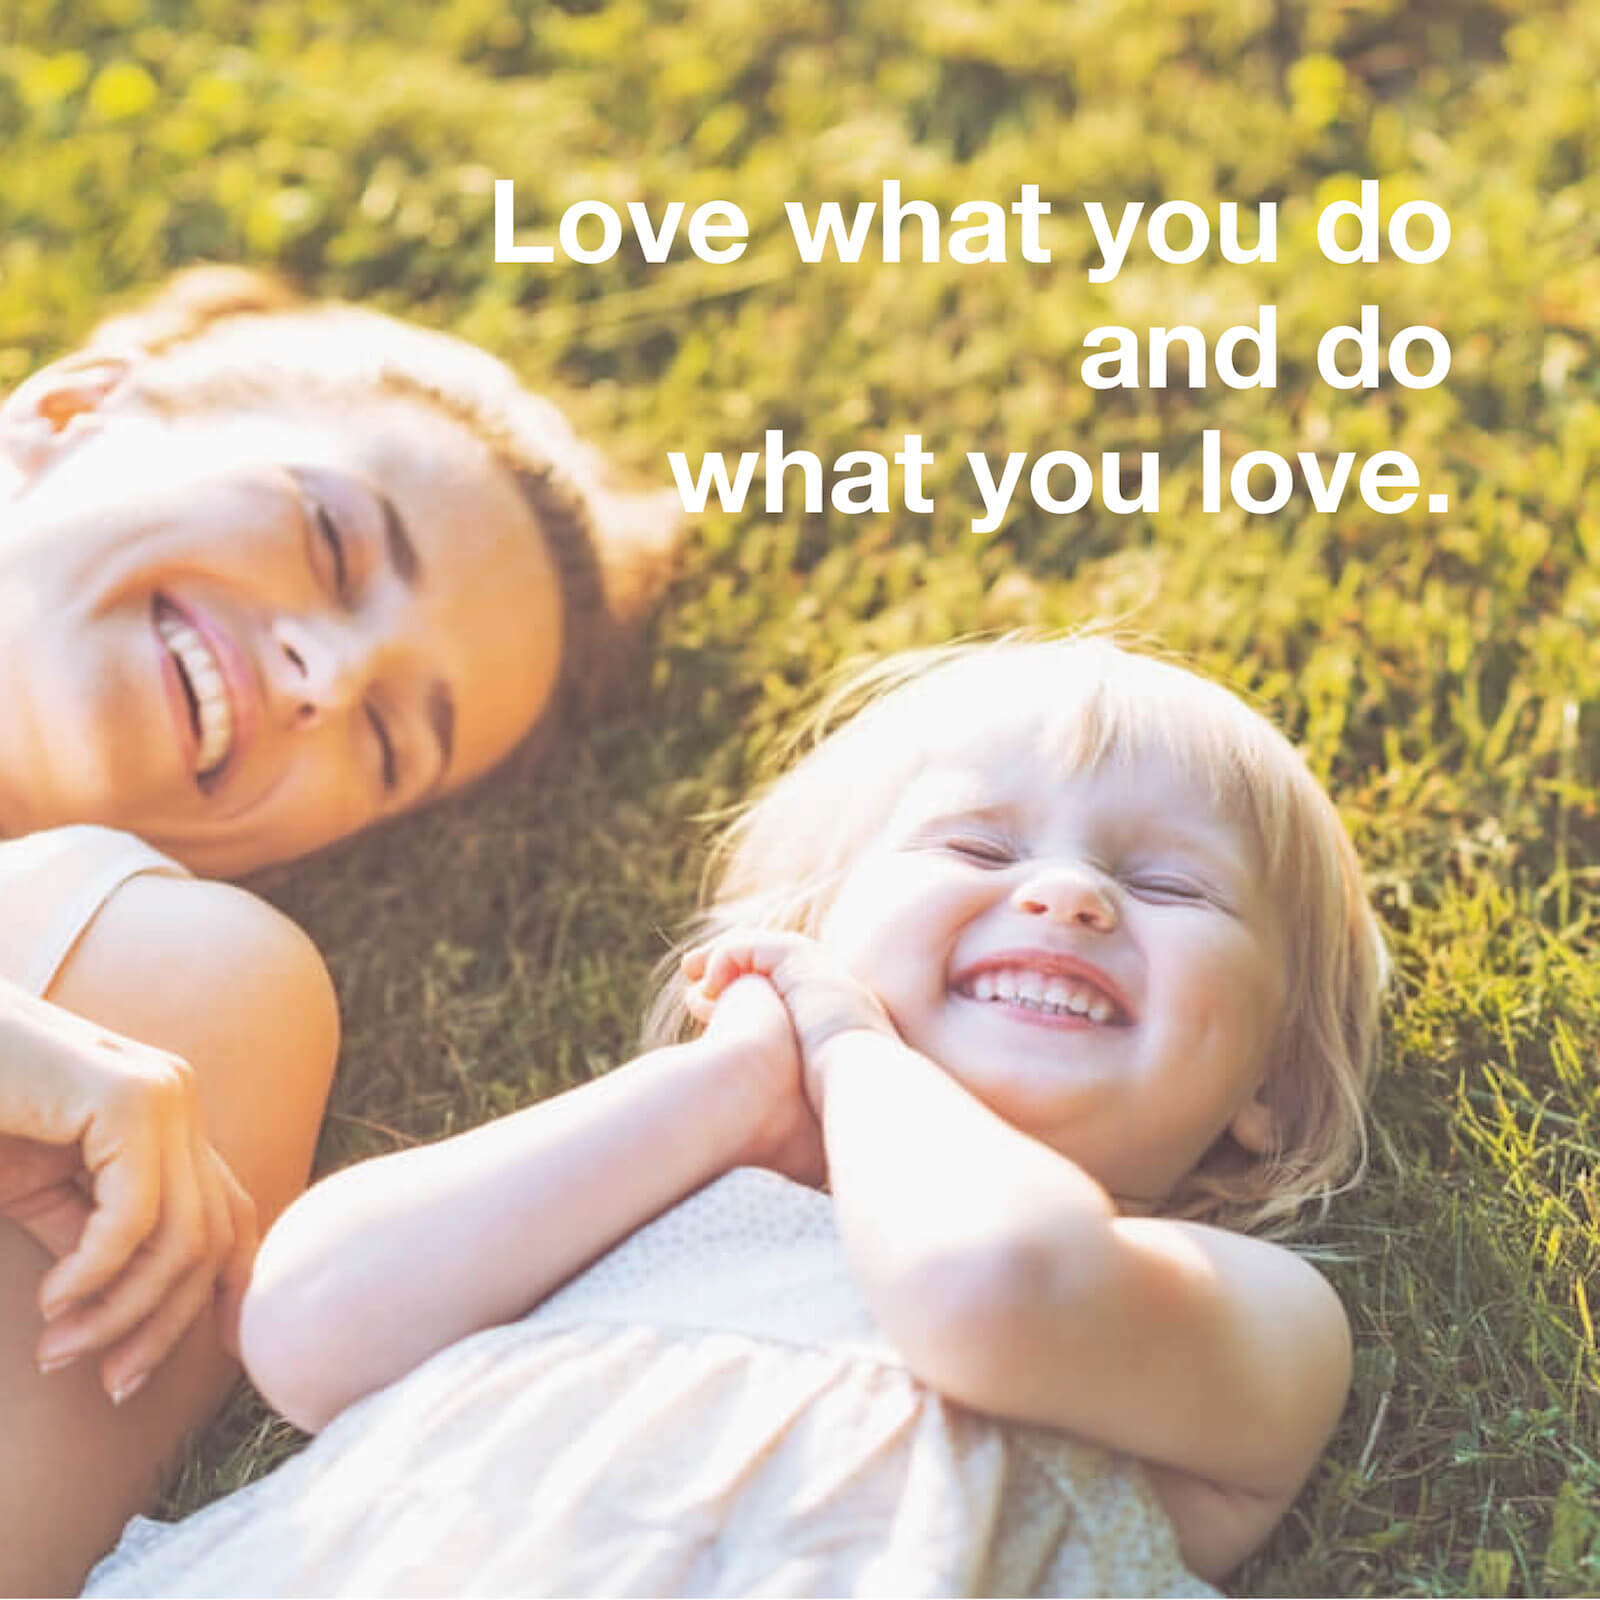 Love what you do and do what you love.